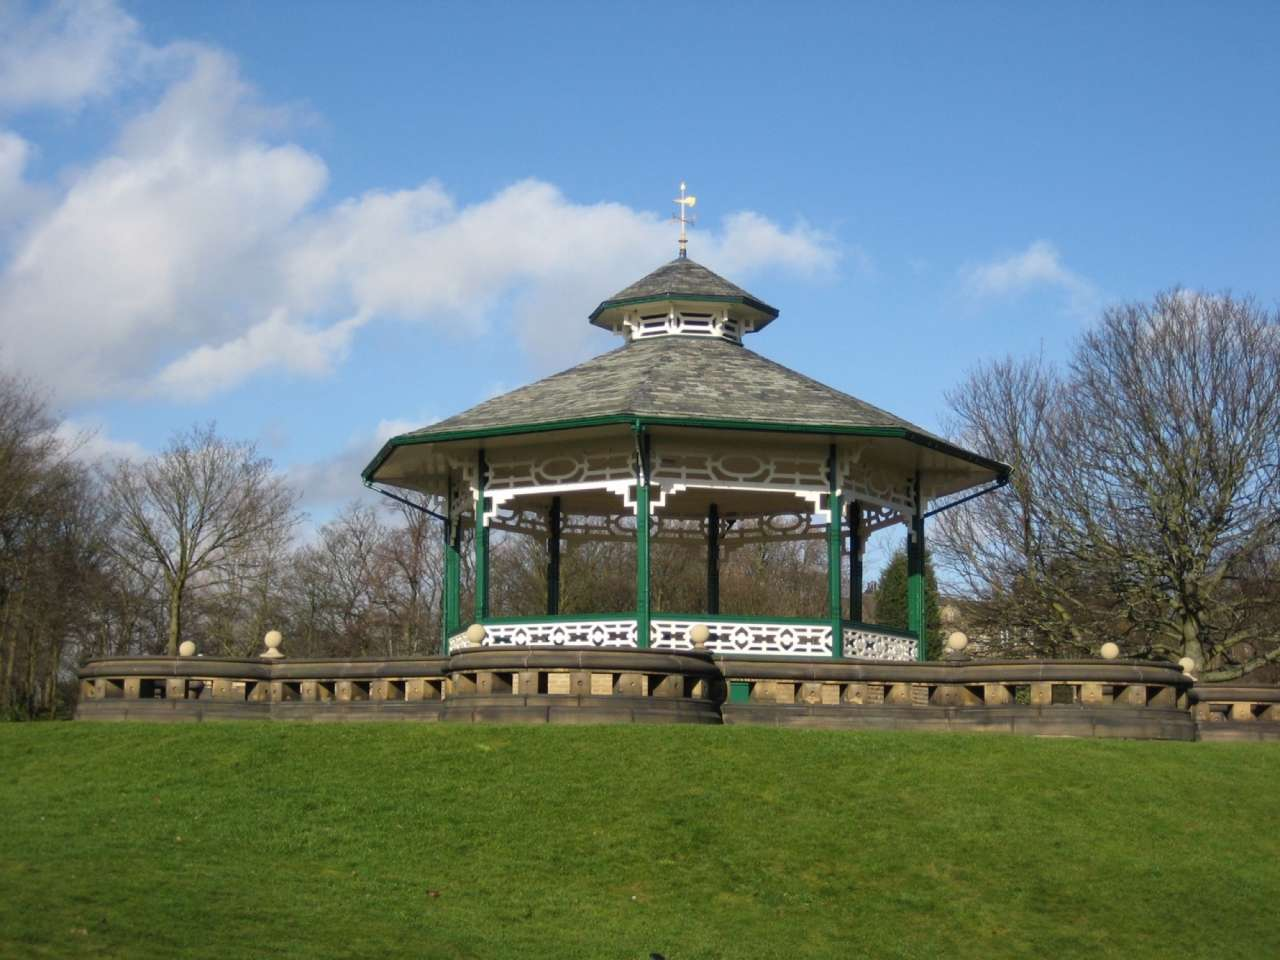 Restoration of Greenhead Park by Gillespies marks 127 years of its history